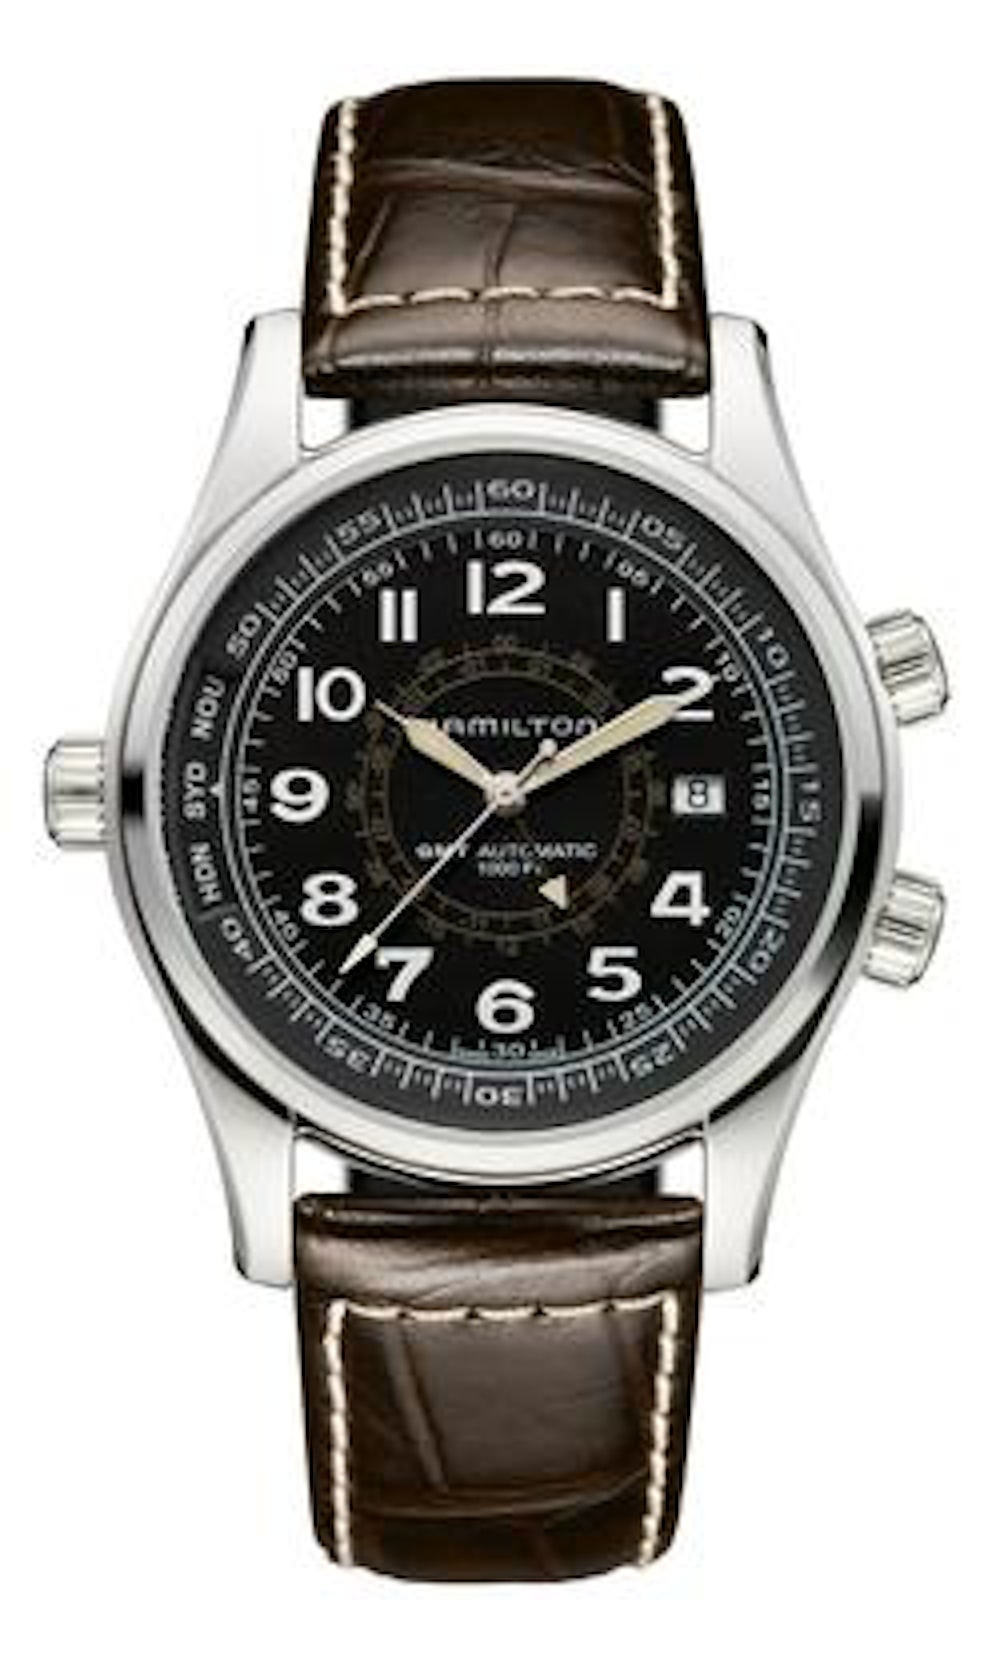 602fae8ee The Hamilton Khaki Skymaster UTC: A Quirky and Affordable GMT - HODINKEE